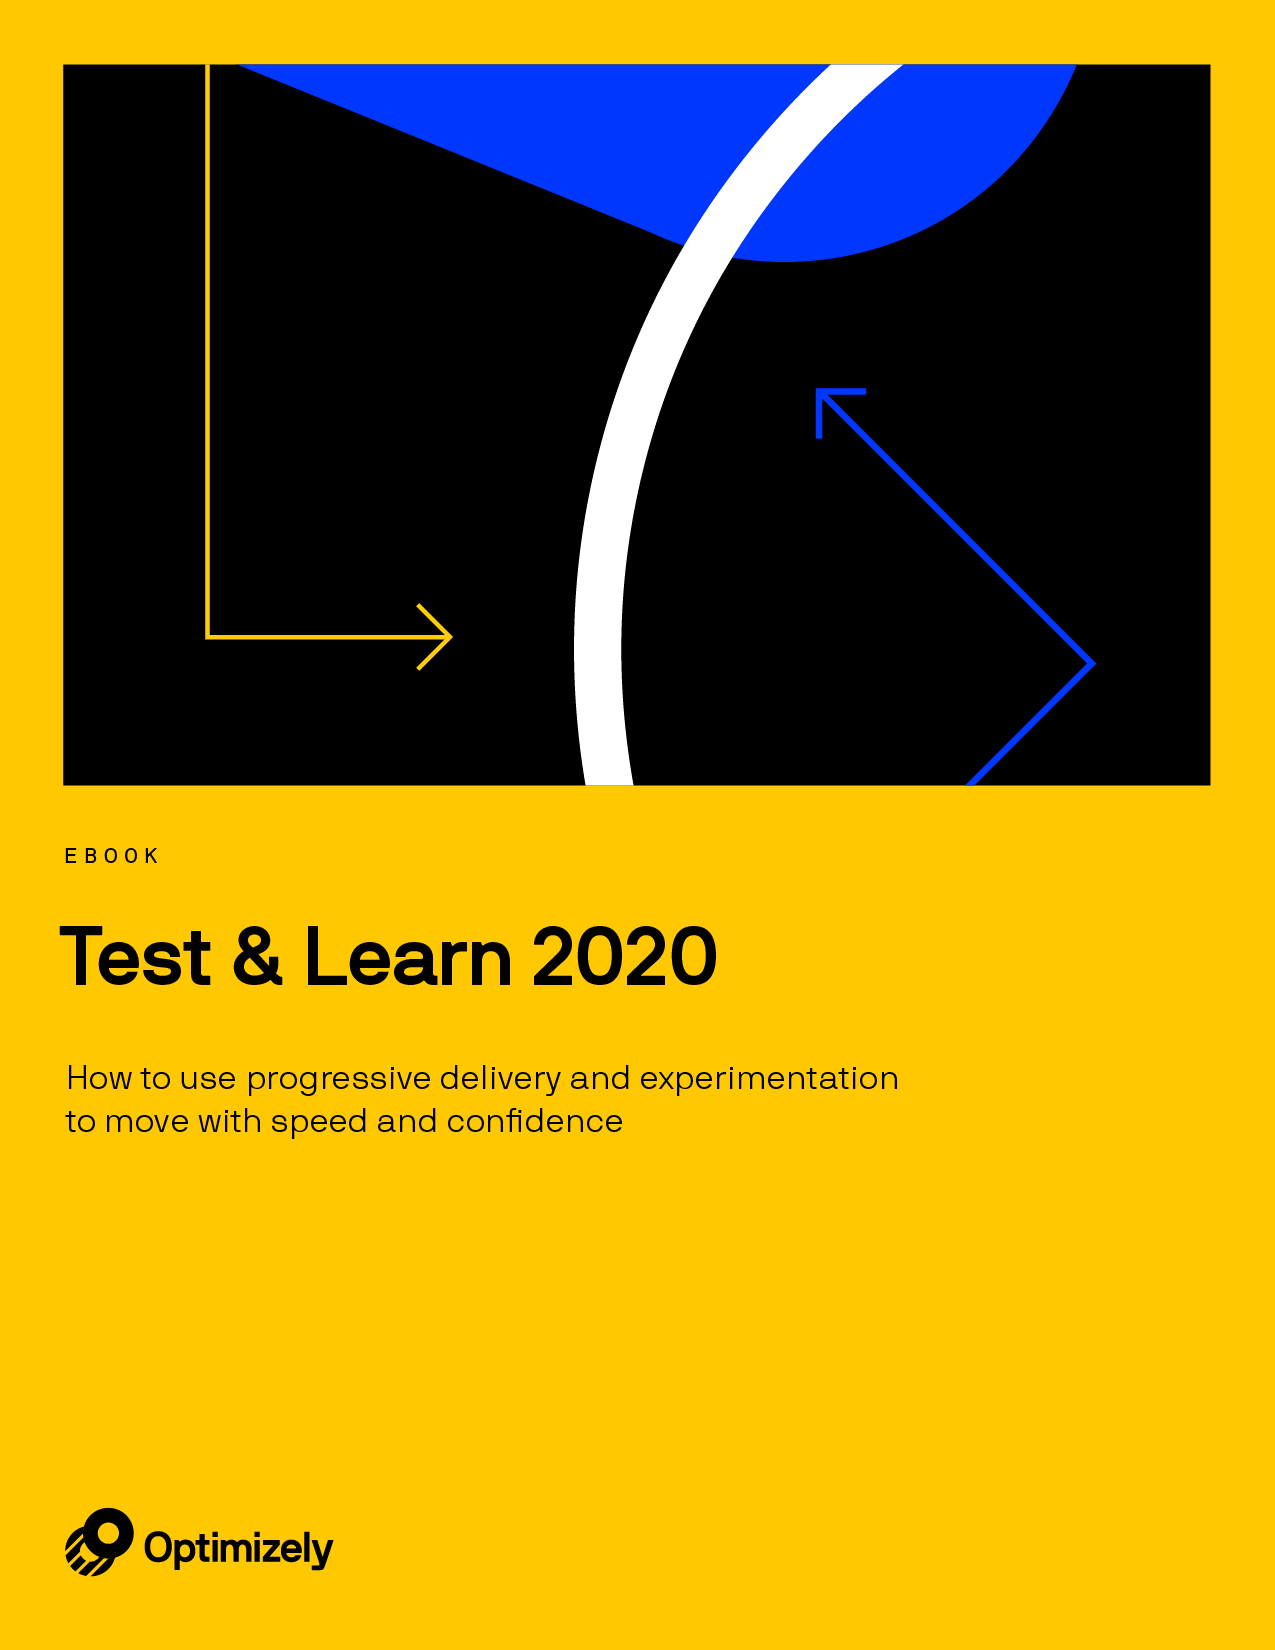 Test & Learn: The Guide to Experimentation and Progressive Delivery